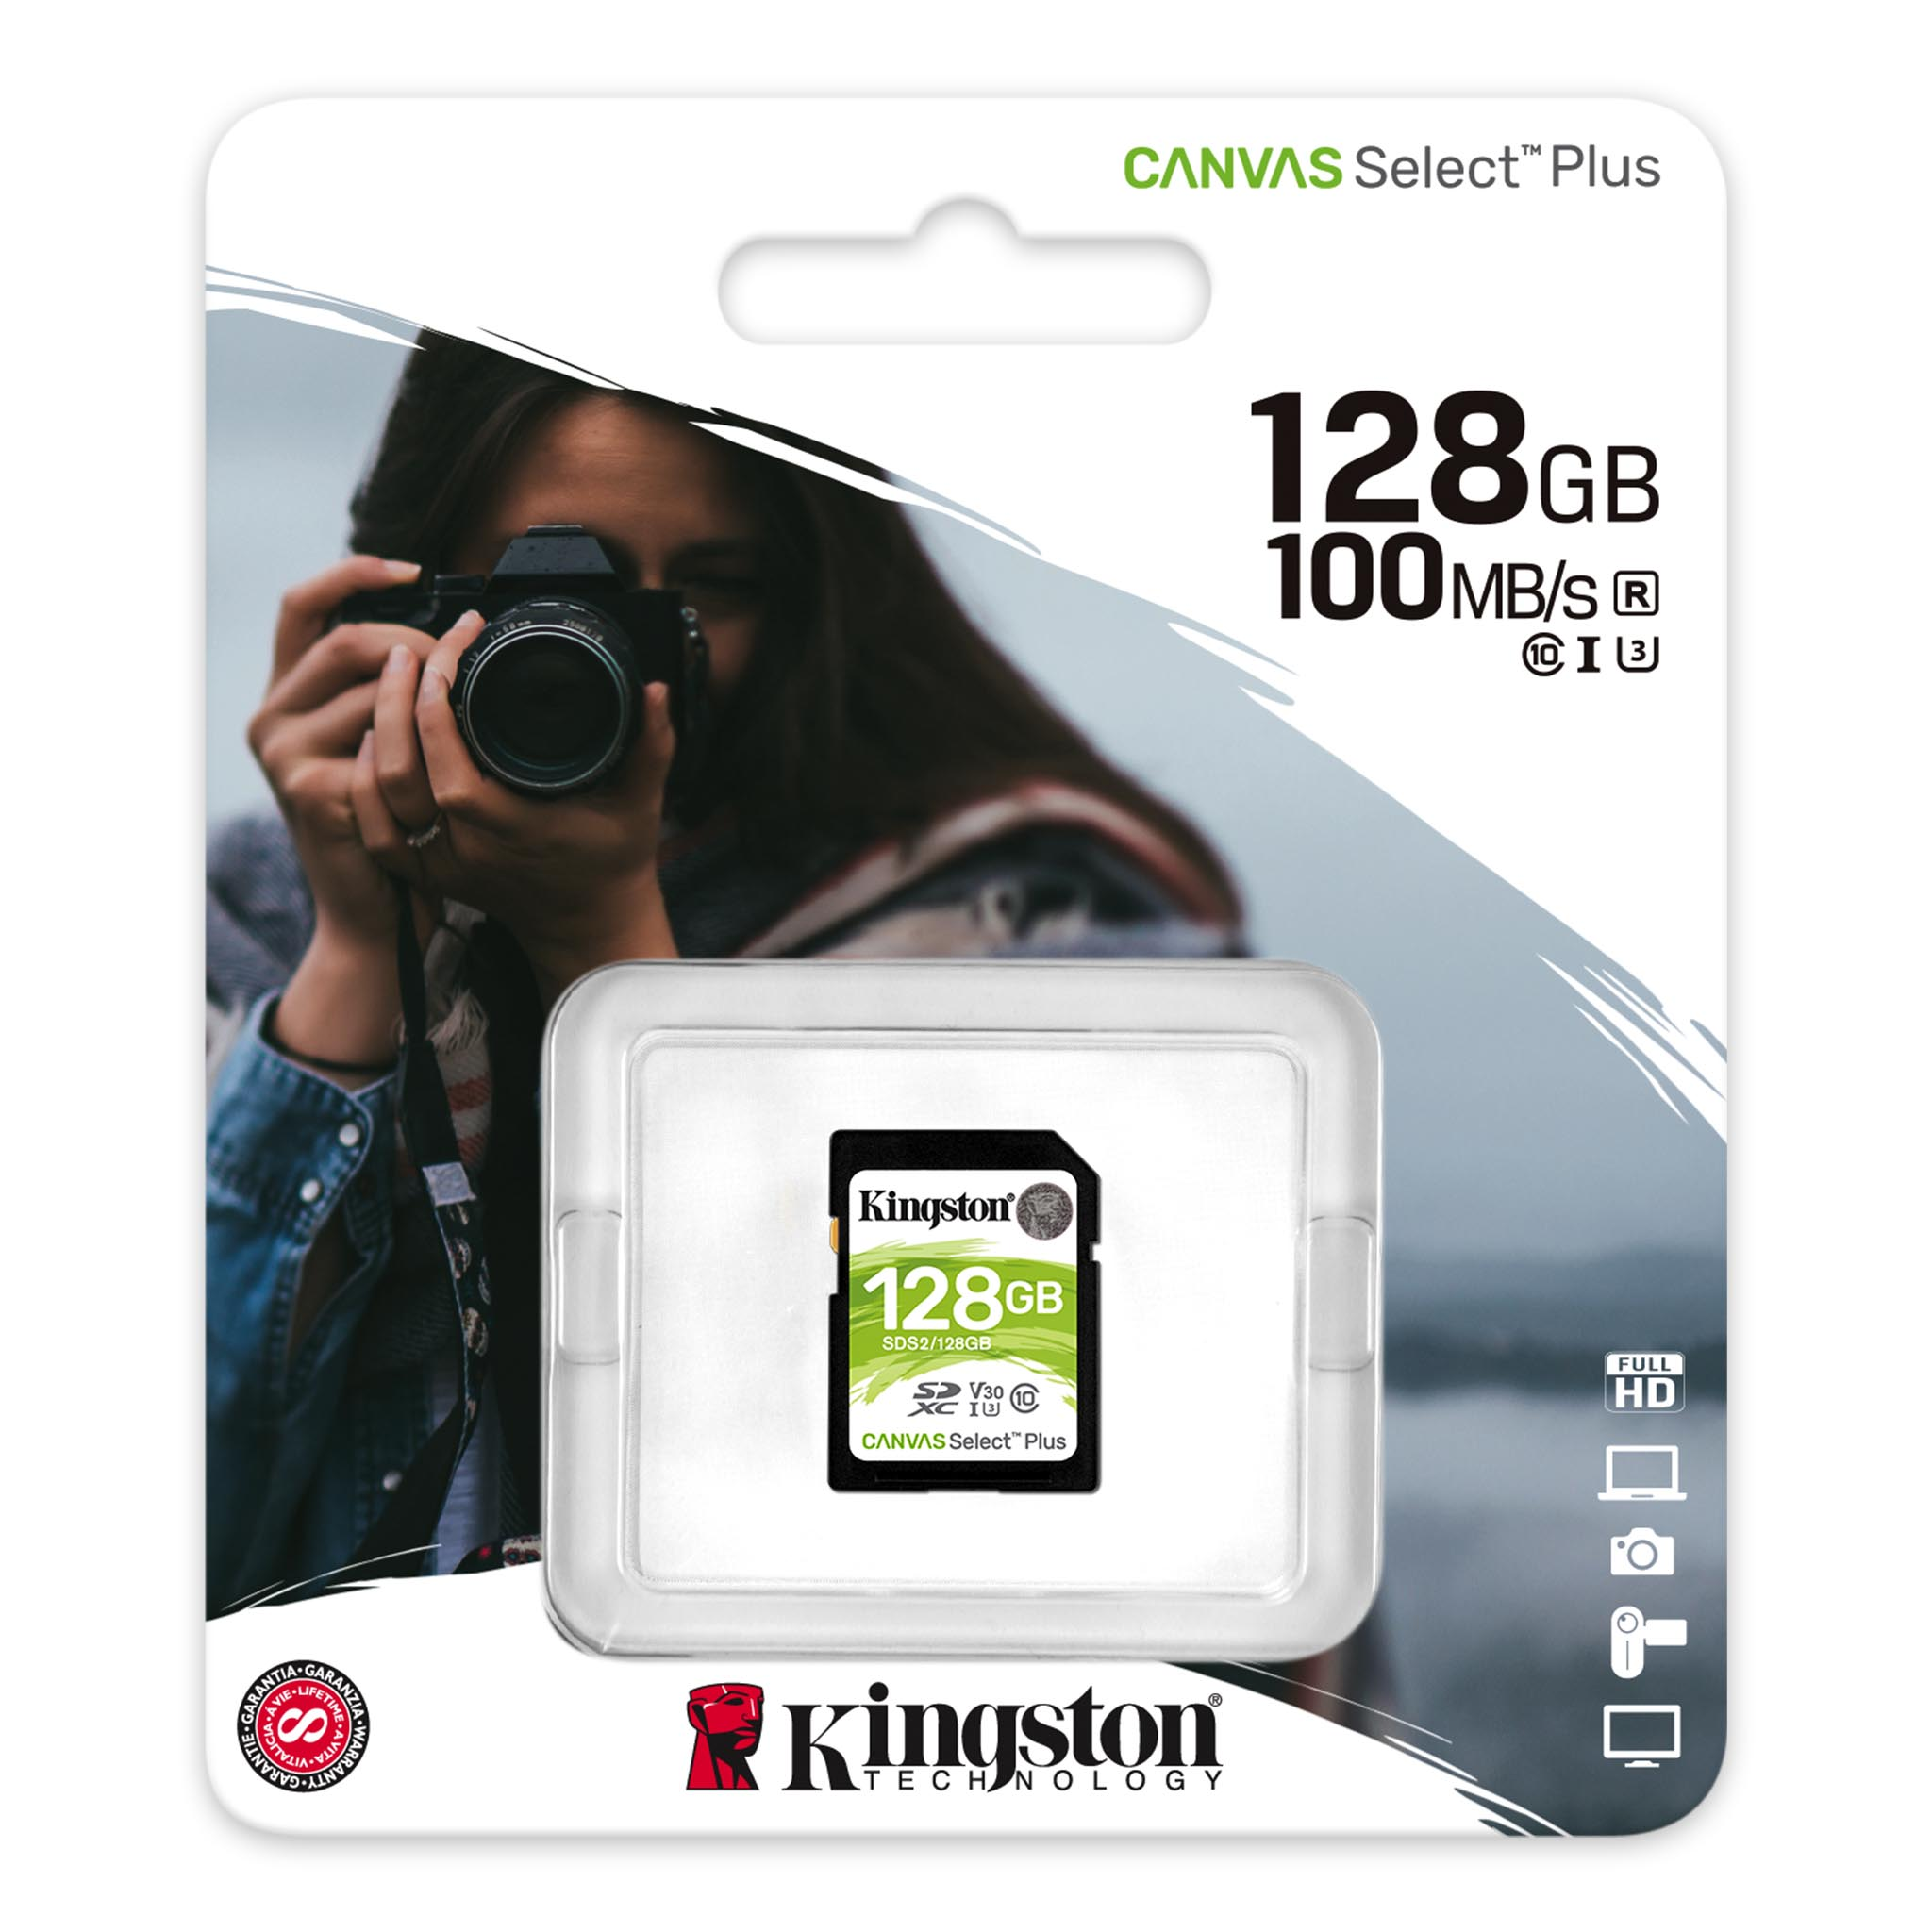 100MBs Works with Kingston Kingston 32GB Huawei Mate S MicroSDHC Canvas Select Plus Card Verified by SanFlash.